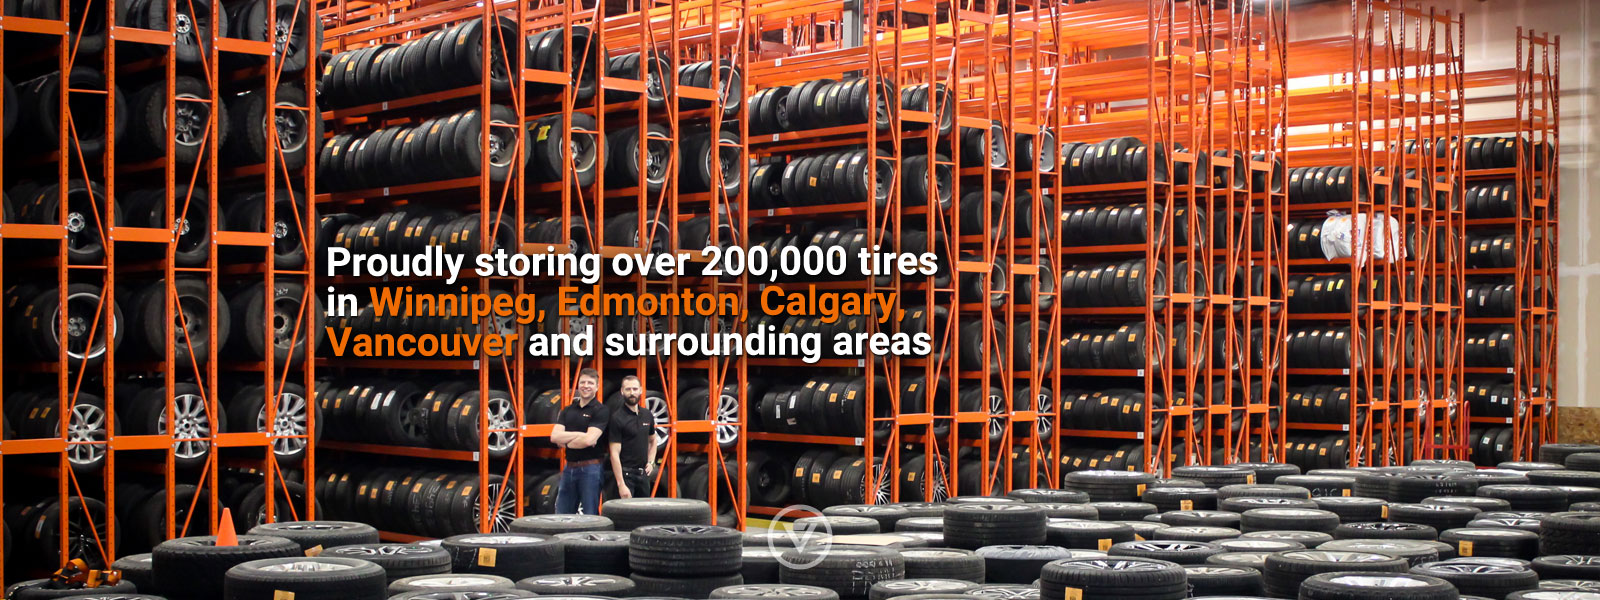 Proudly storing over 200,000 tires in Winnipeg, Edmonton, Calgary, Vancouver and surrounding areas